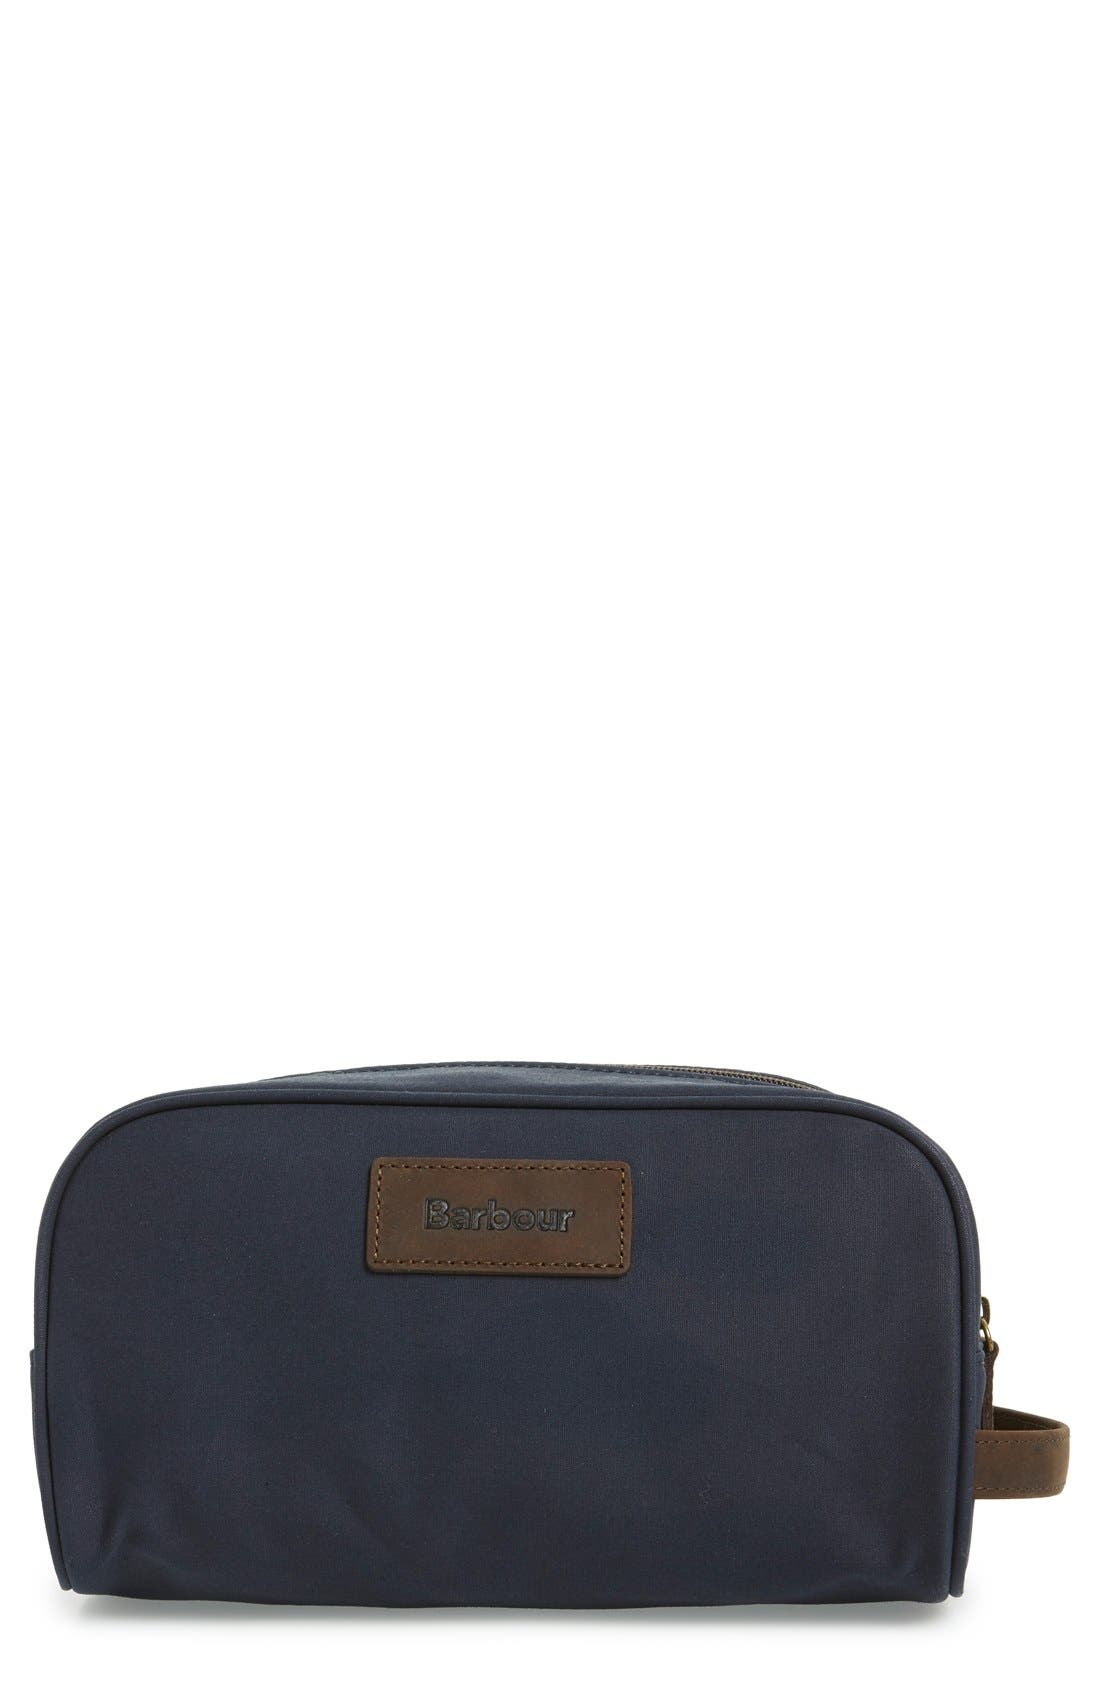 BARBOUR Waxed Canvas Travel Kit, Main, color, 410